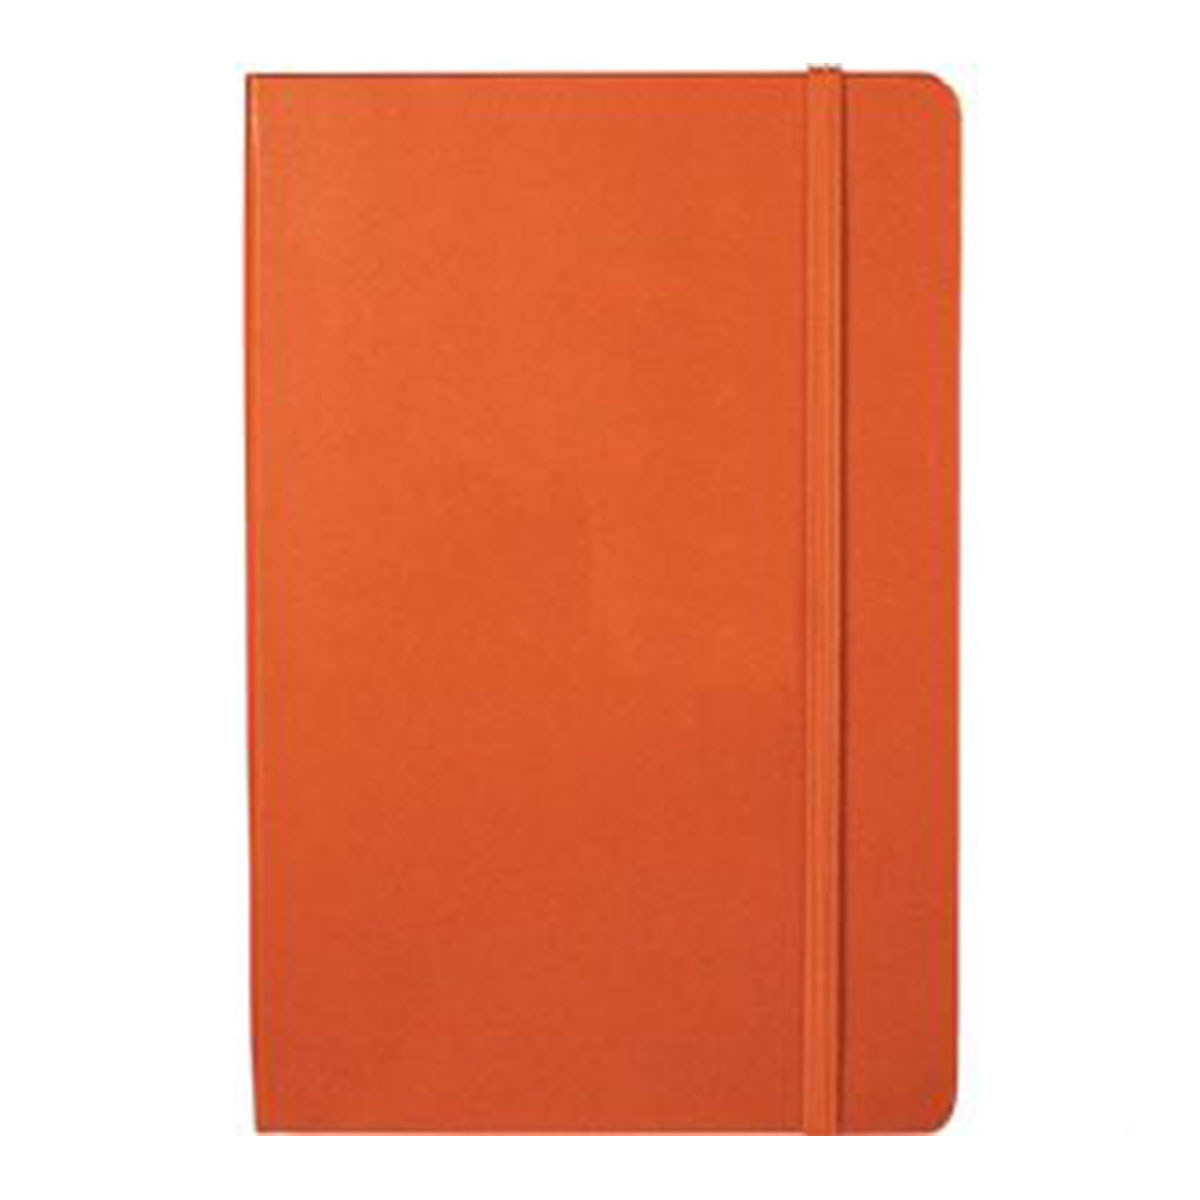 Ambassador Bound JournalBook-Orange